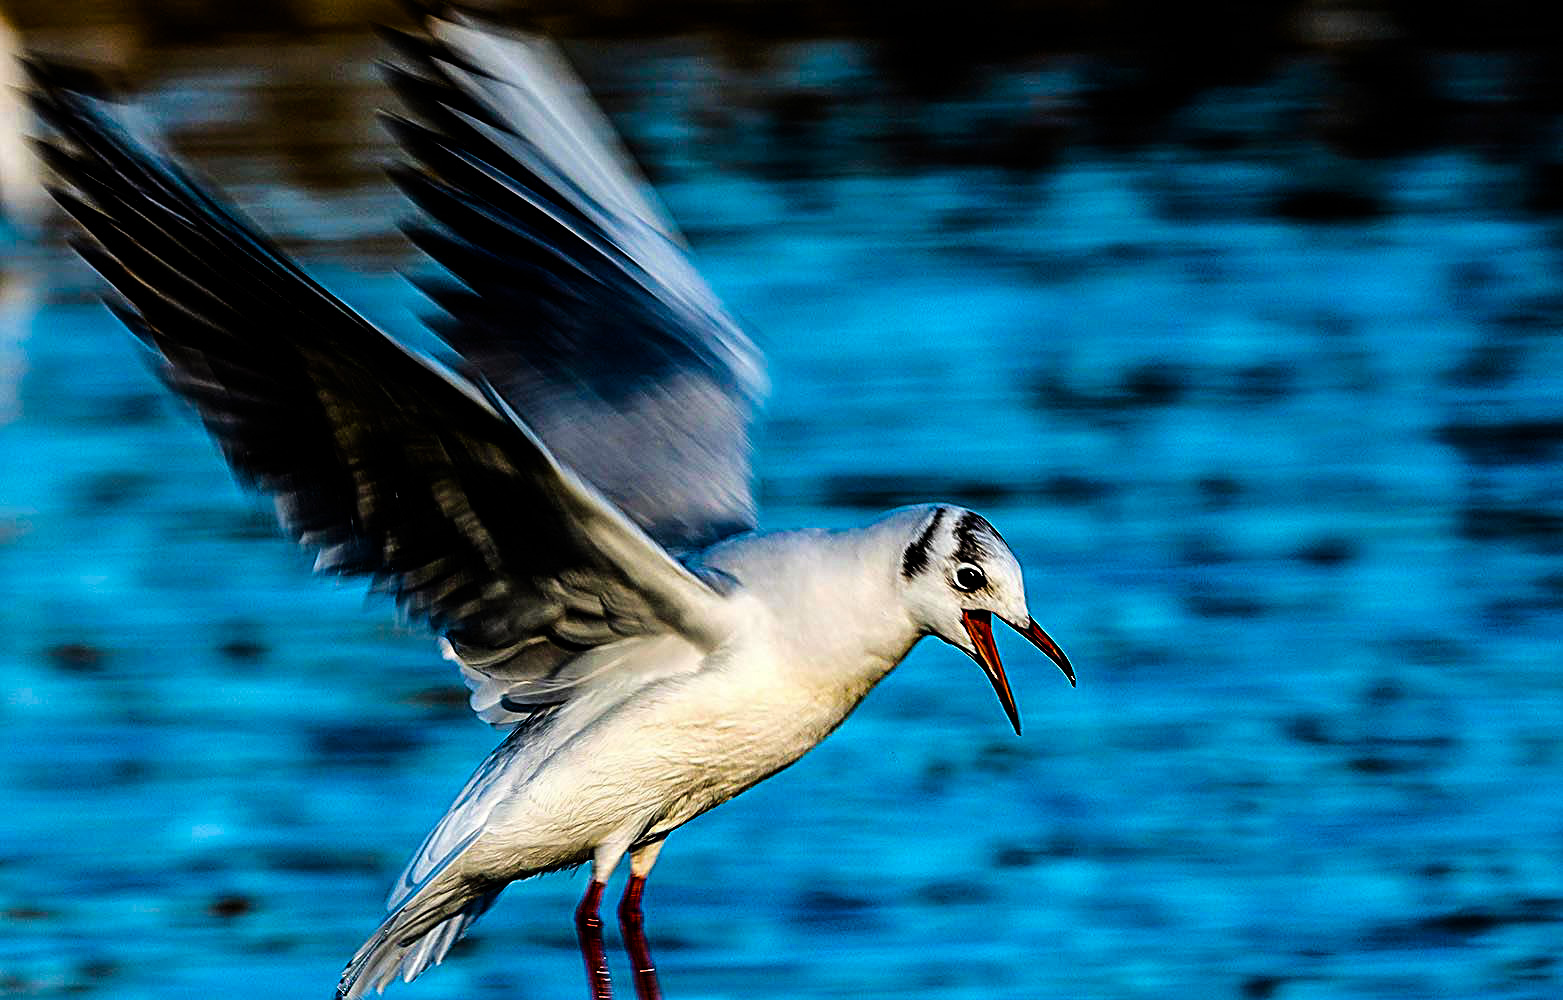 Laughing gull wing movement